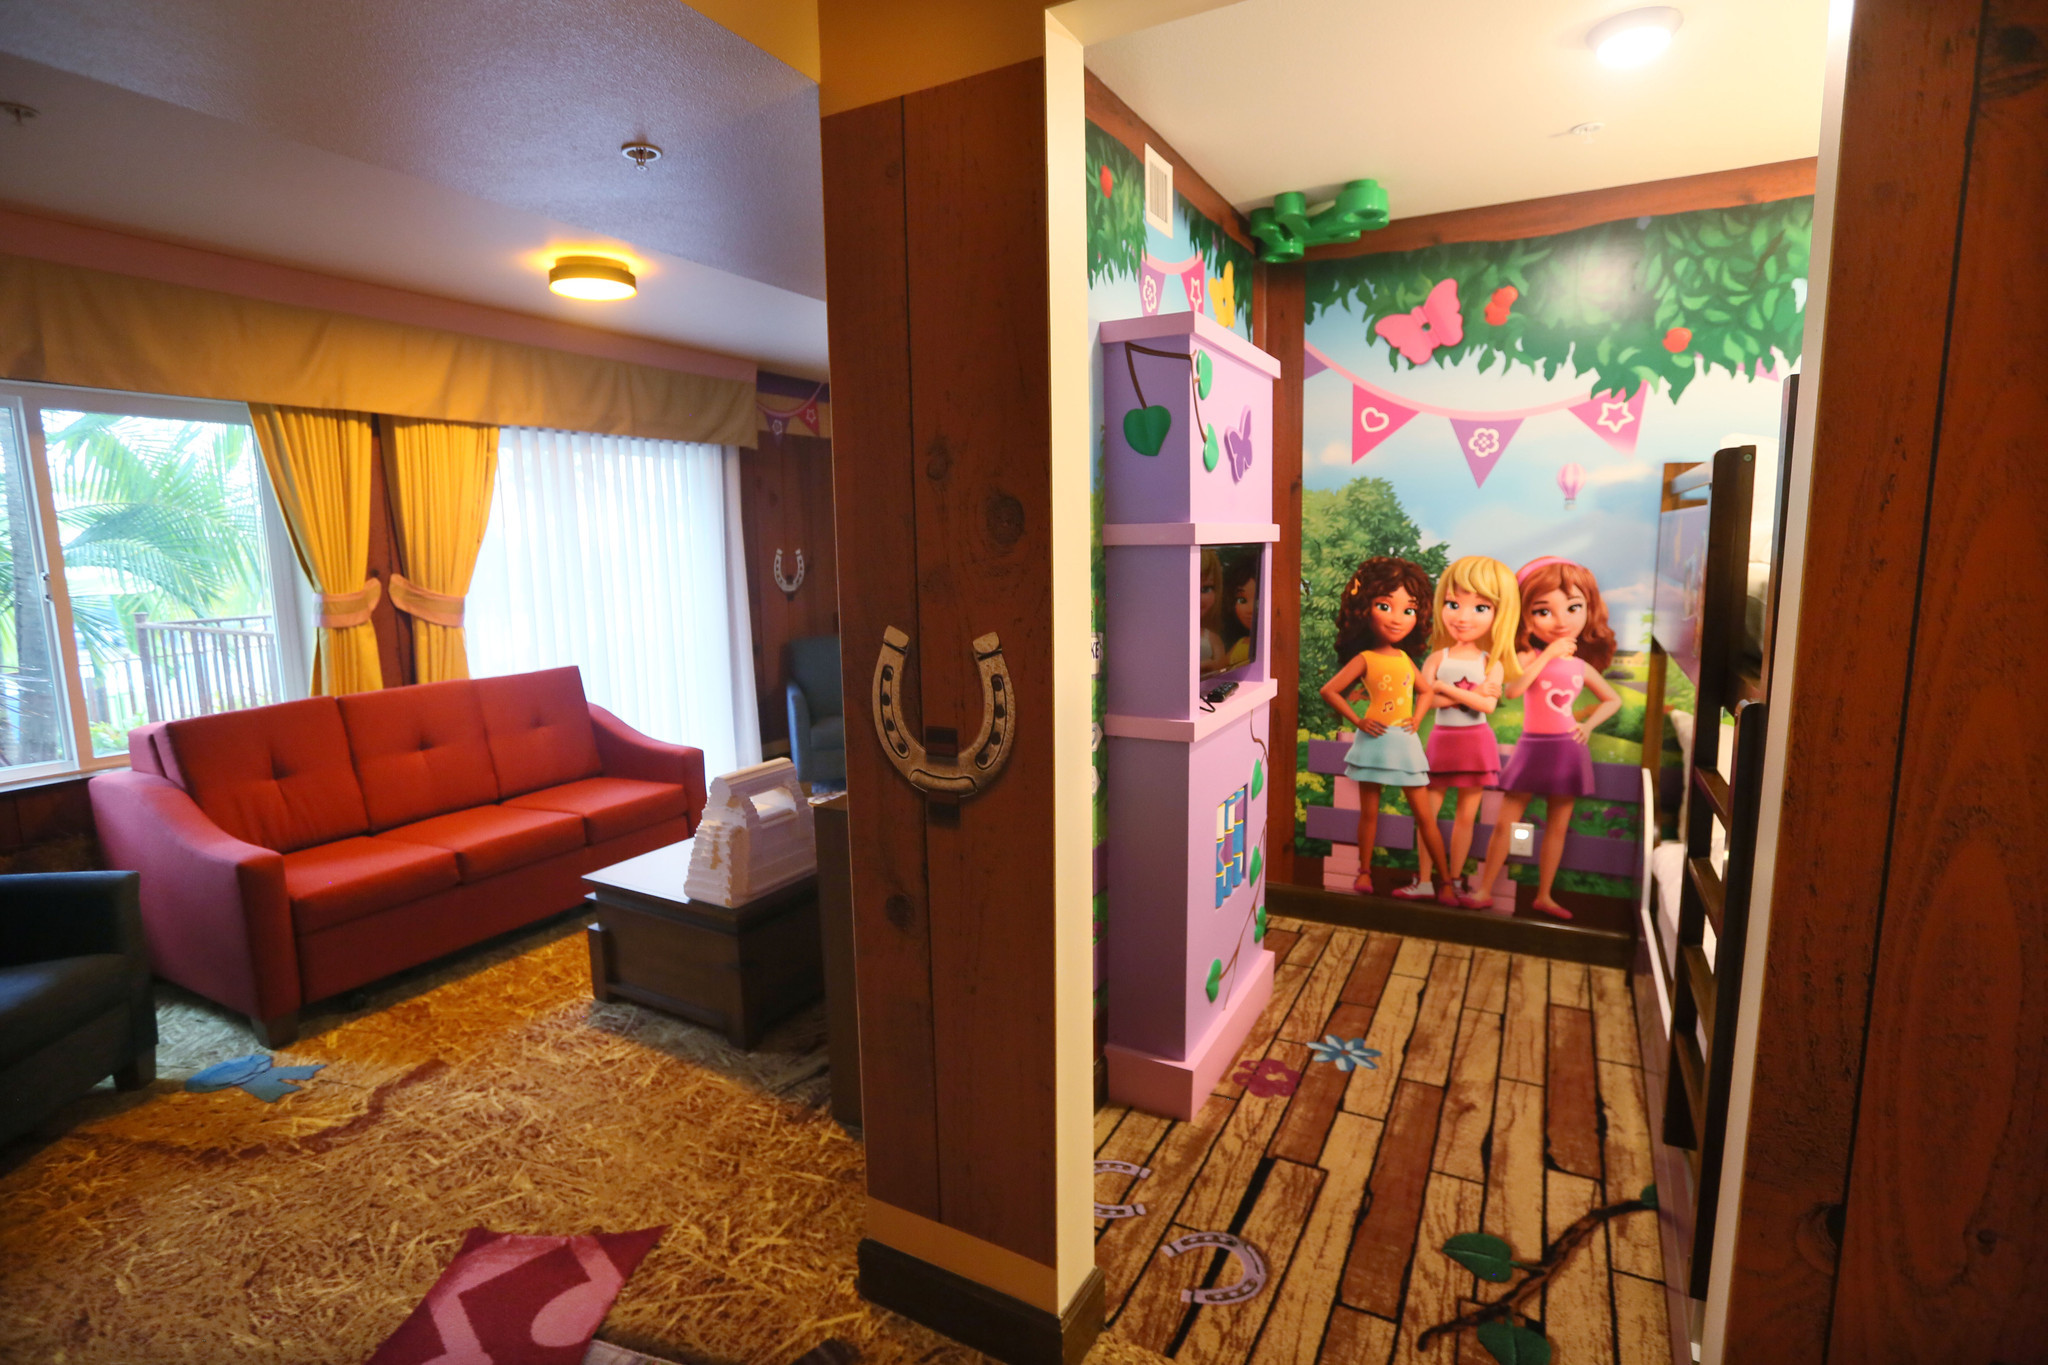 Lego Friends Rooms Come To The Legoland Hotel But How